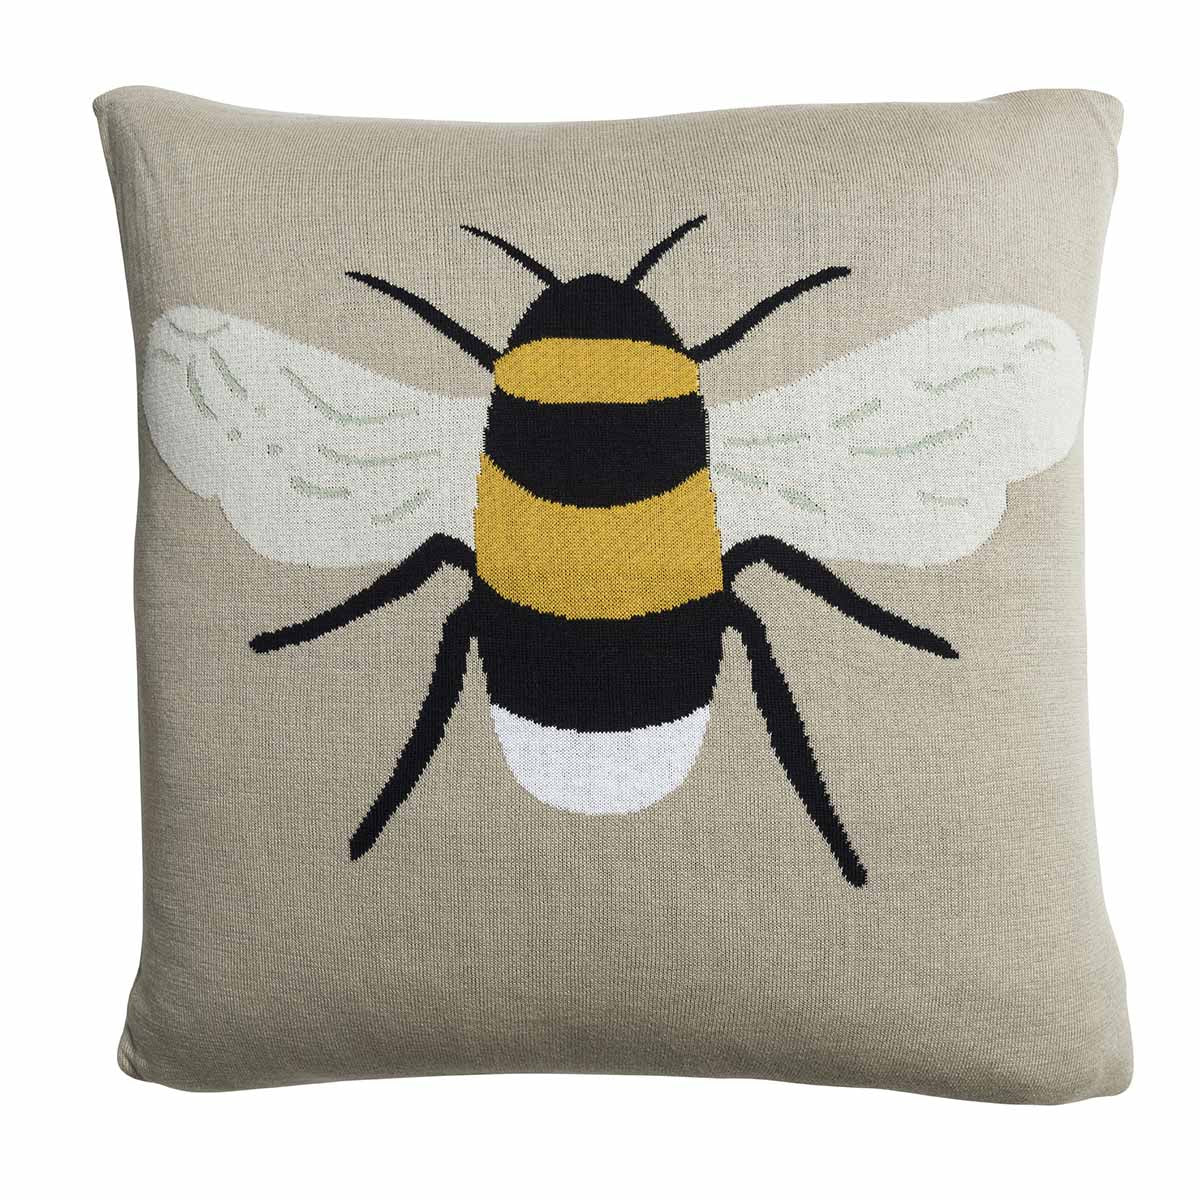 Bees Knitted Statement Cushion